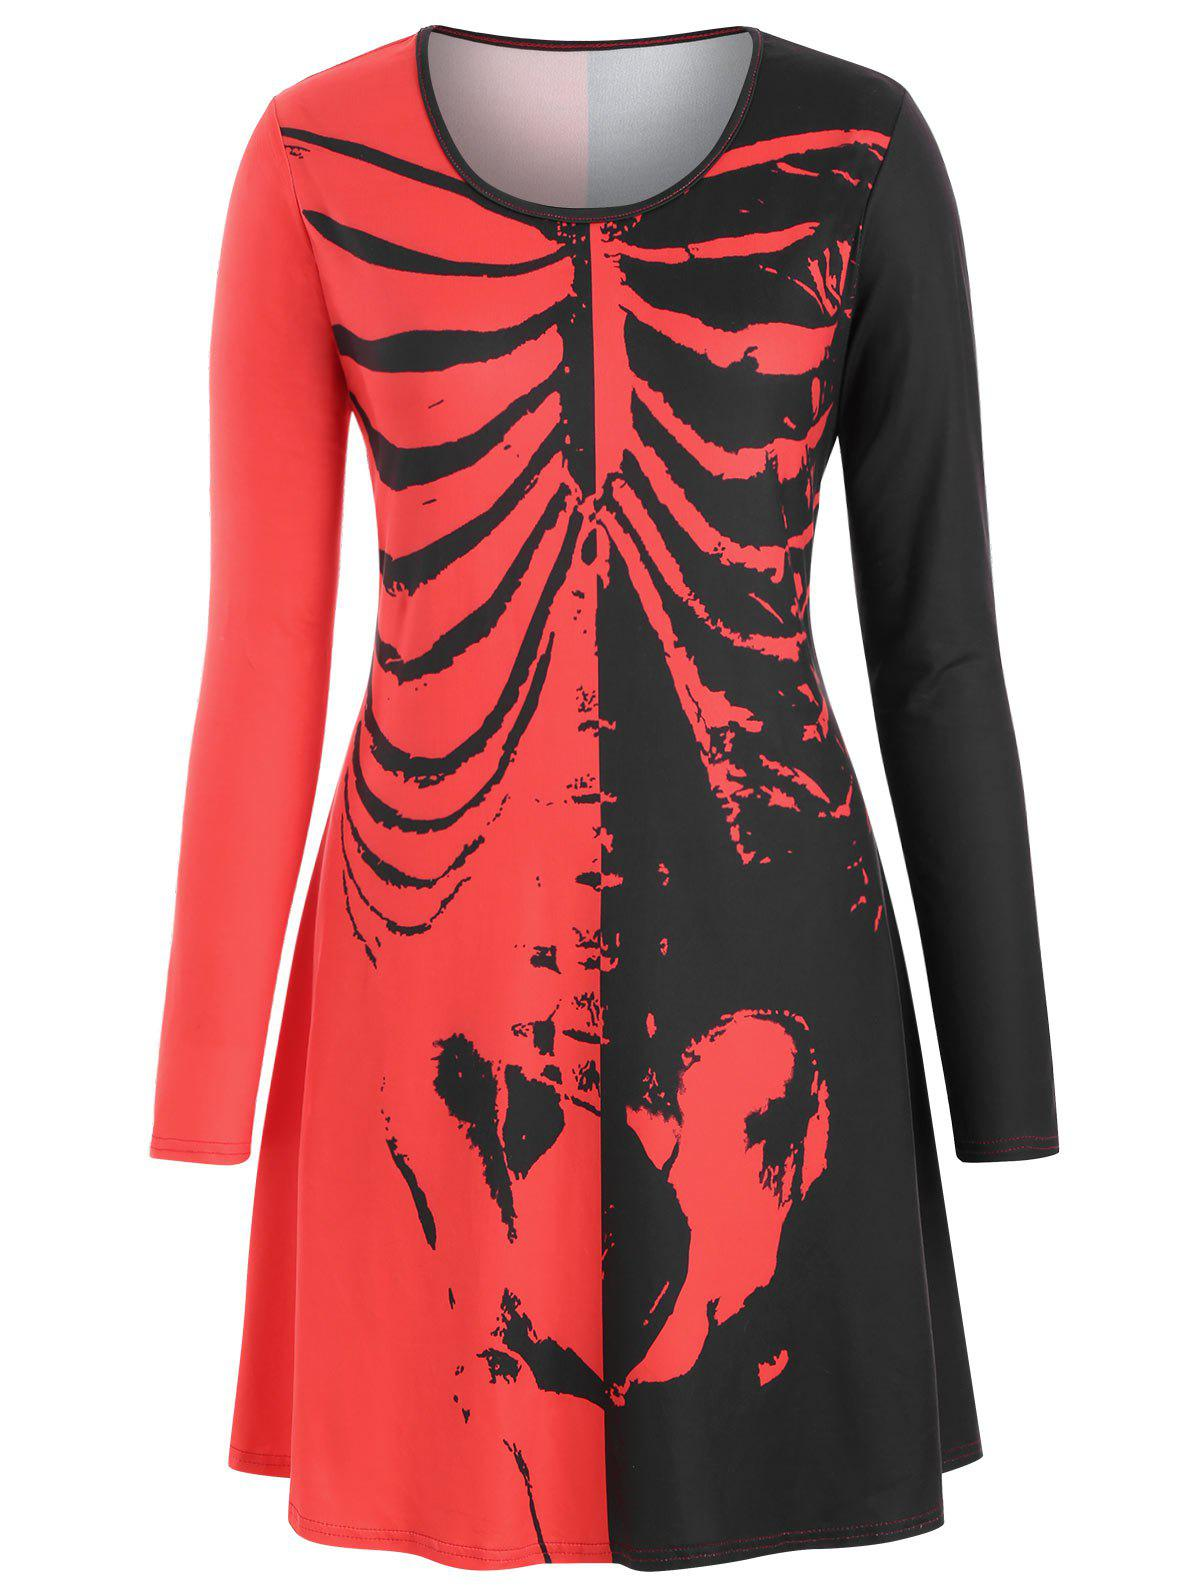 Shop Long Sleeve Skeleton Halloween Plus Size Tee Dress